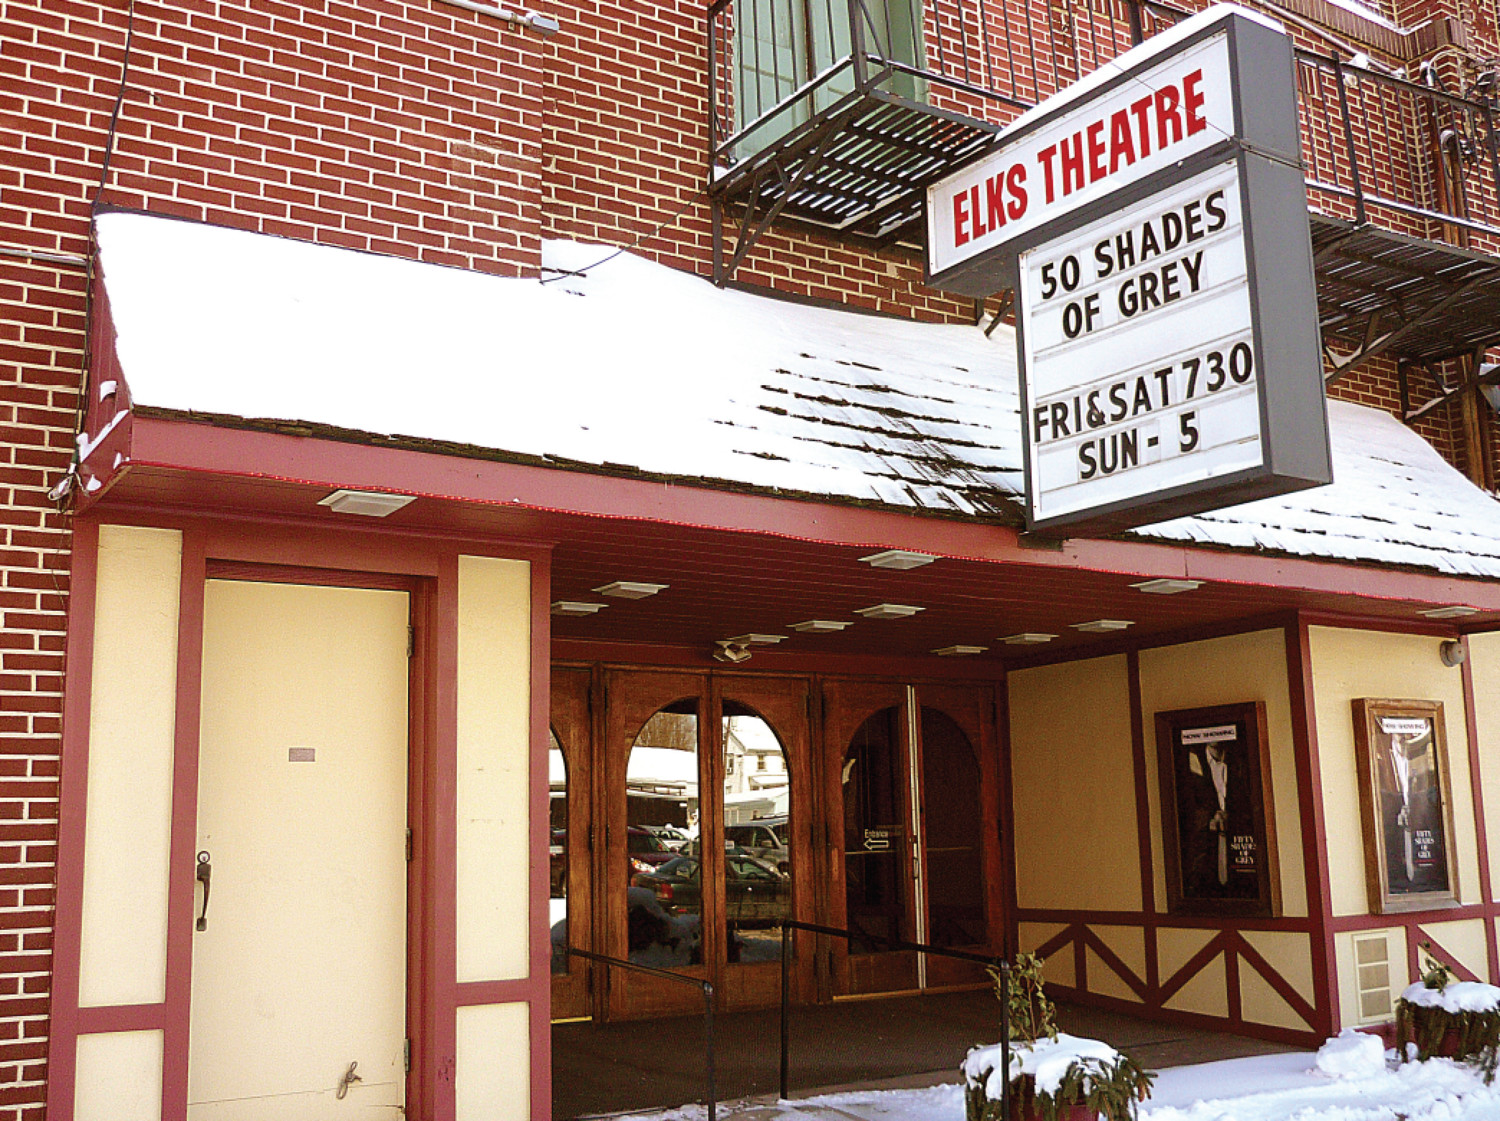 The Elks Theatre is seen here in the spring of 2015, before it was shut down.